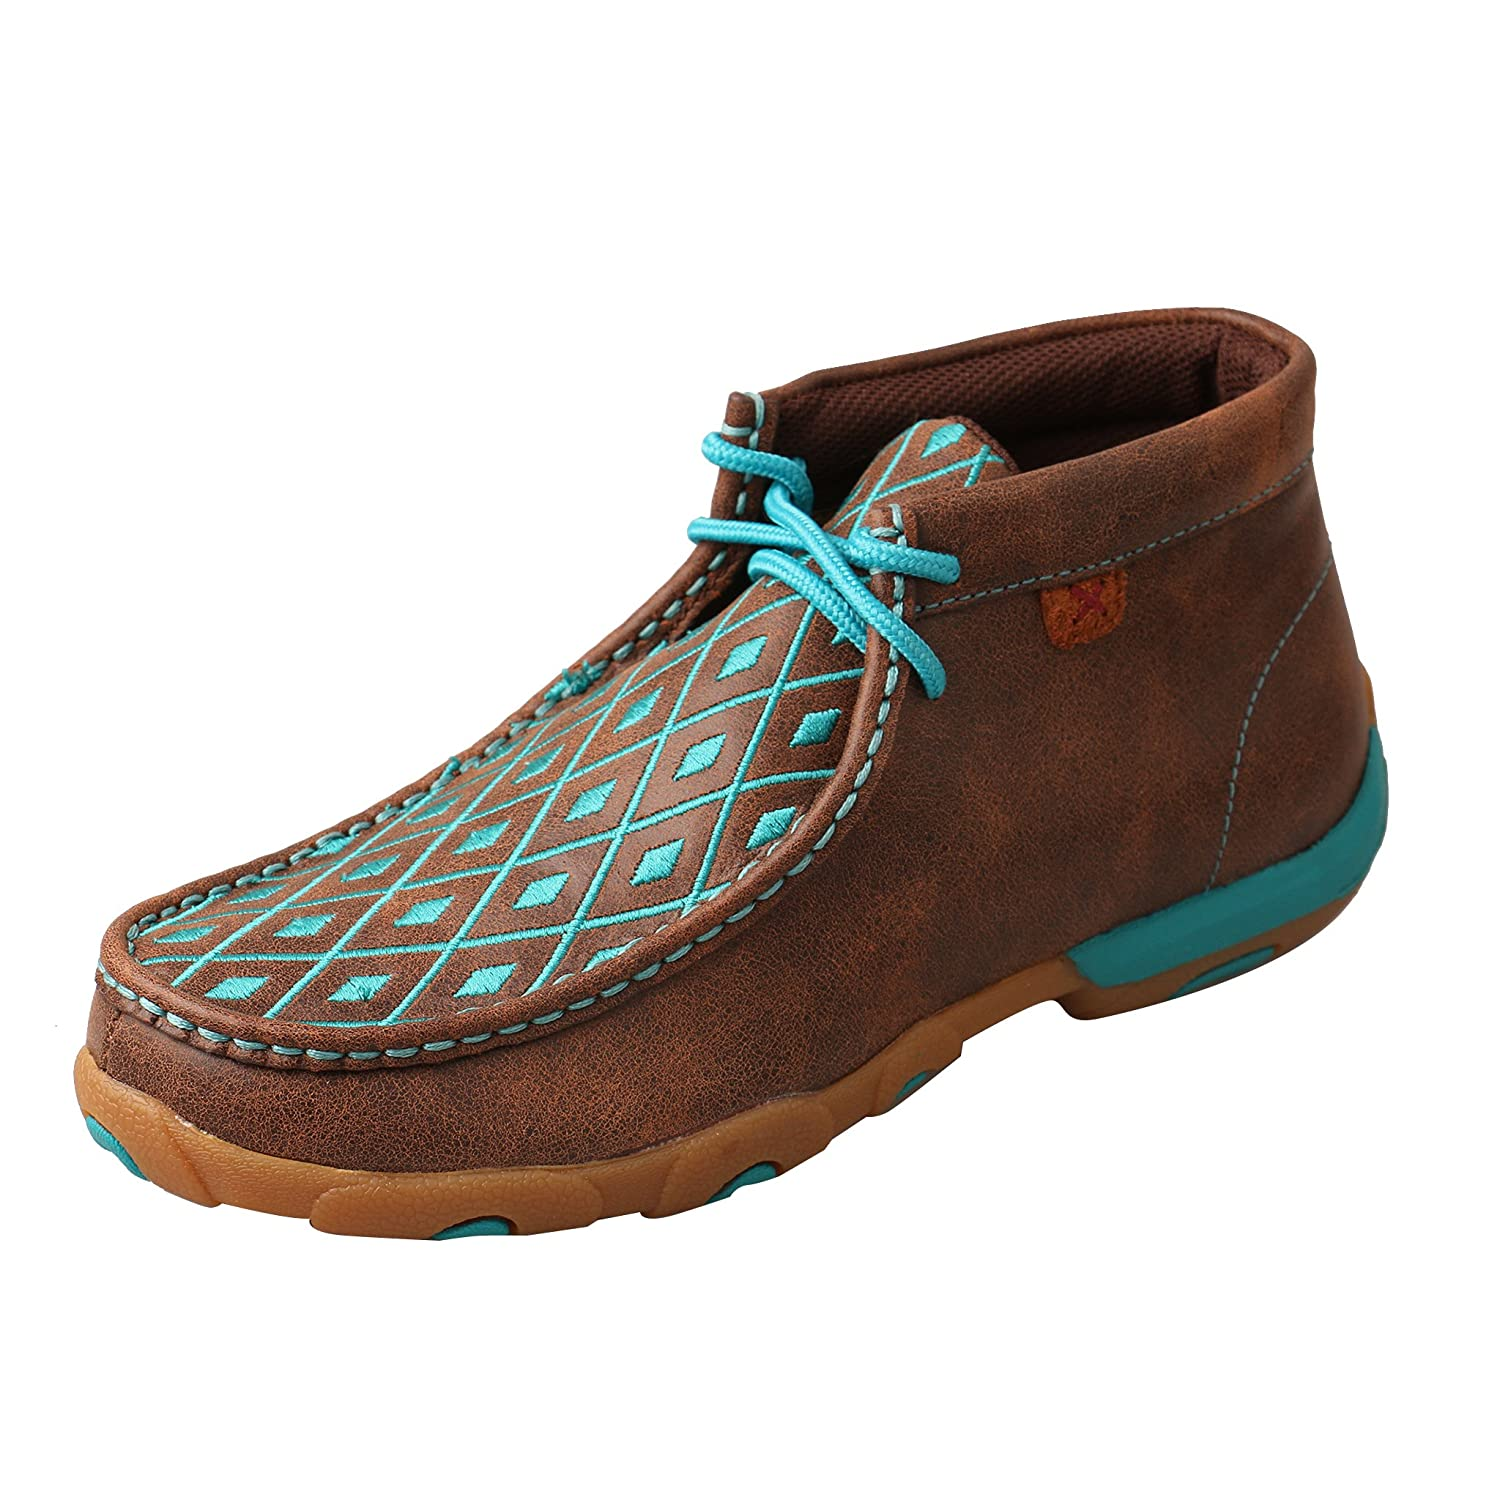 Twisted X Women's Leather Lace-up Rubber Sole Driving Moccasins - Brown/Turquoise B074BPBKXR 10 B(M) US|Brown/Turquoise